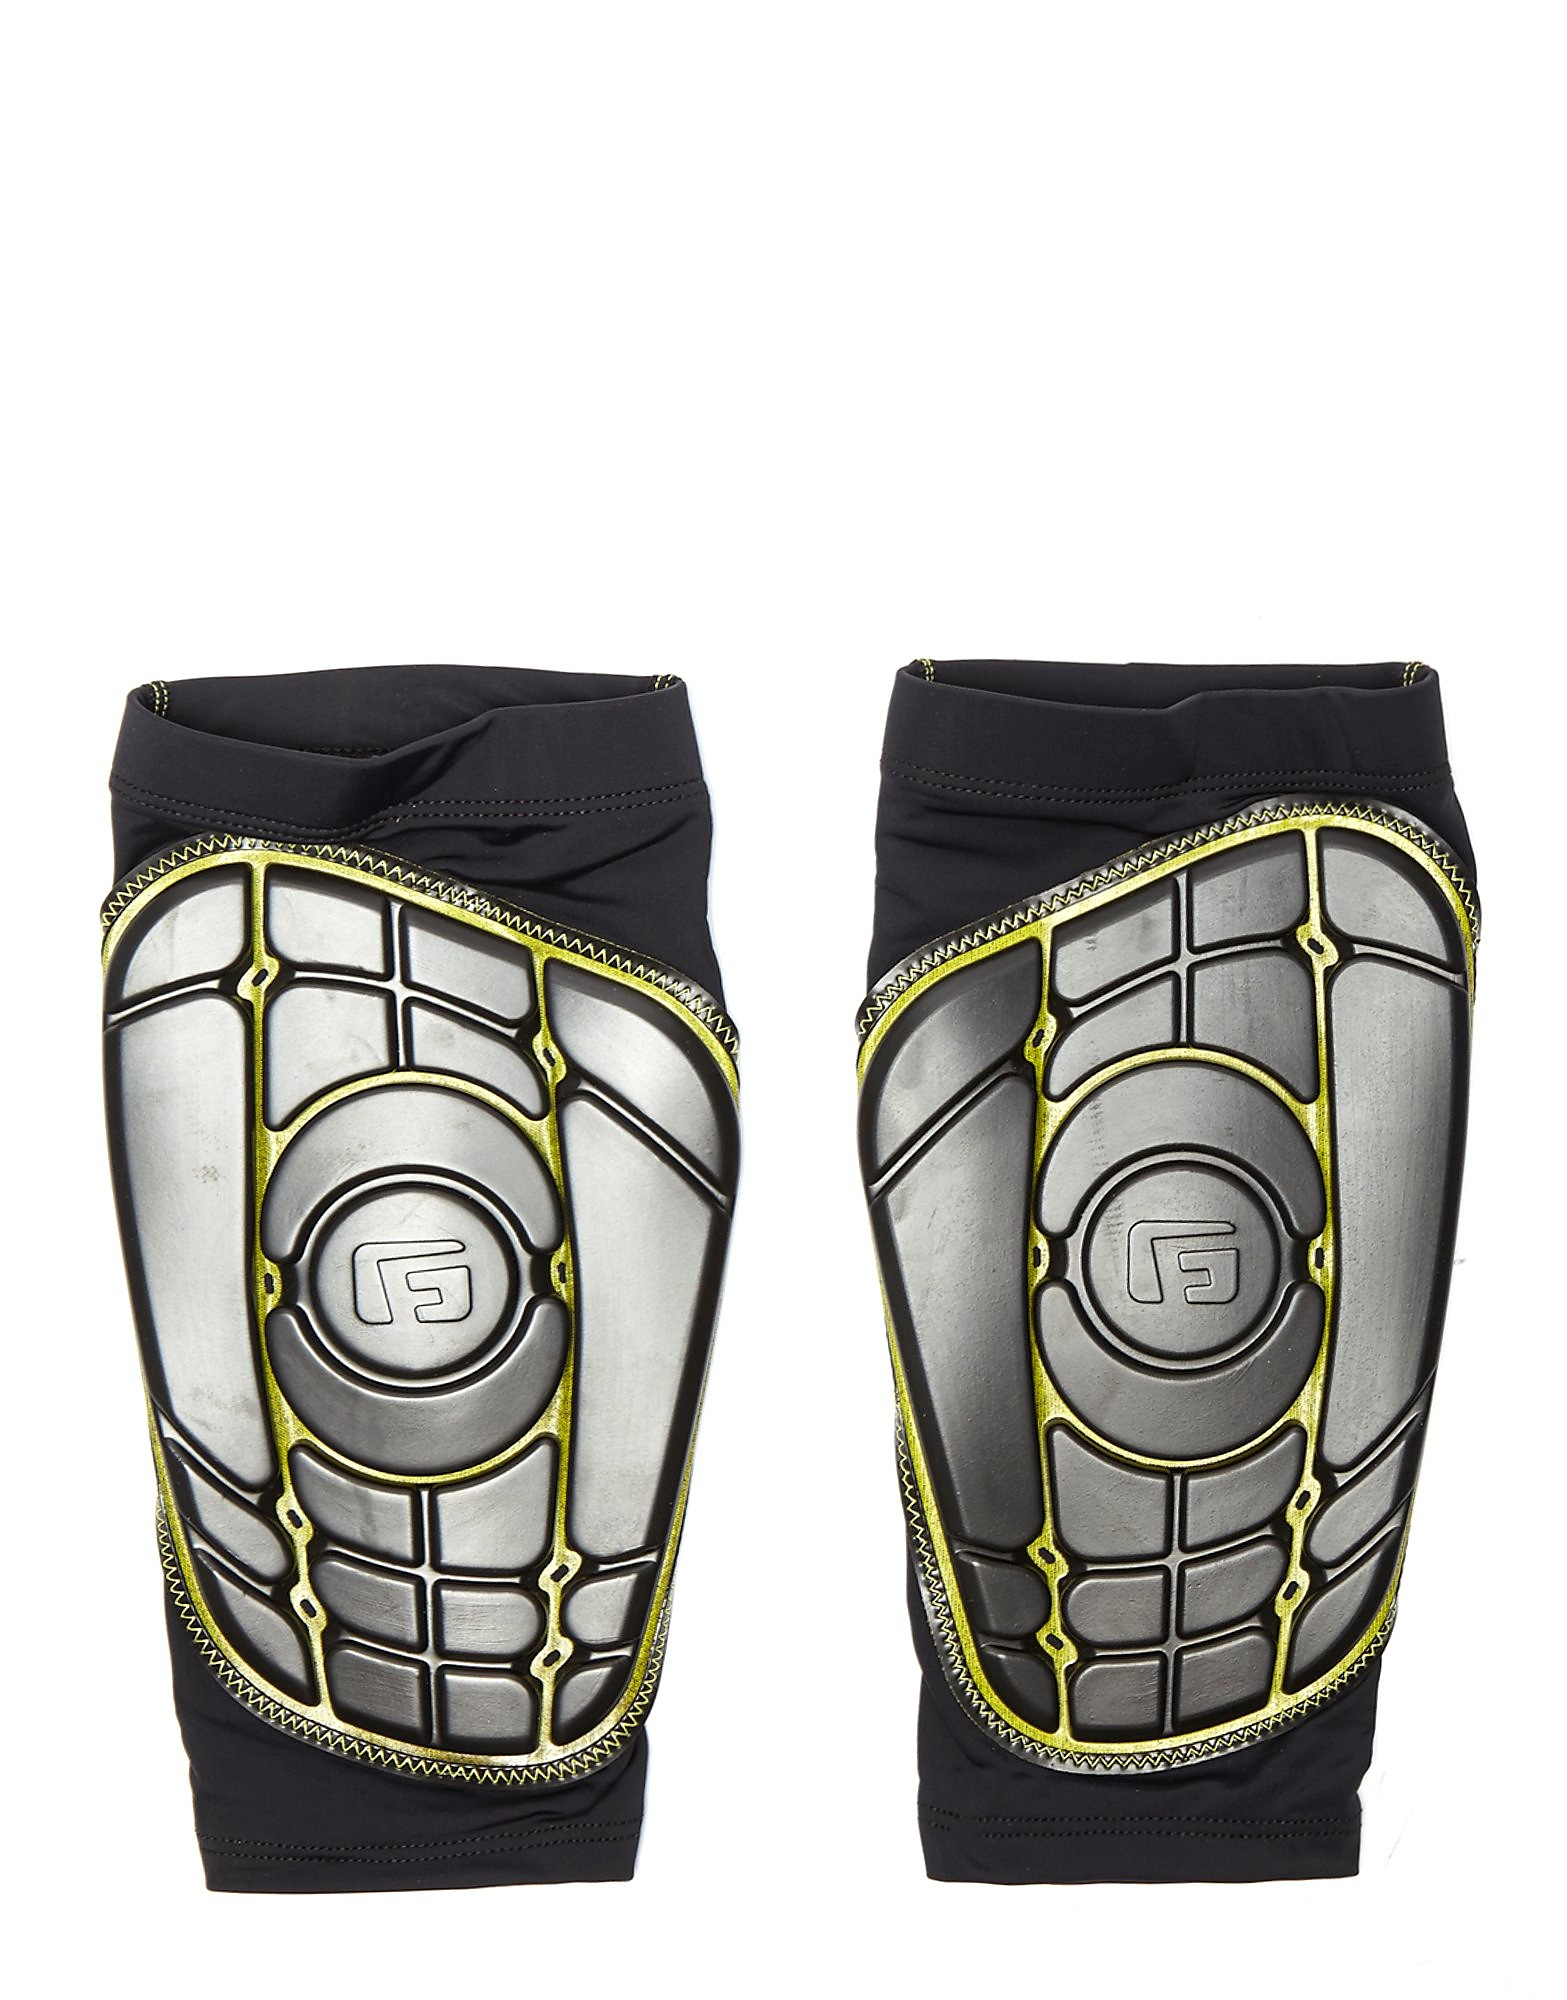 G-Form S-Pro Elite Shinguards